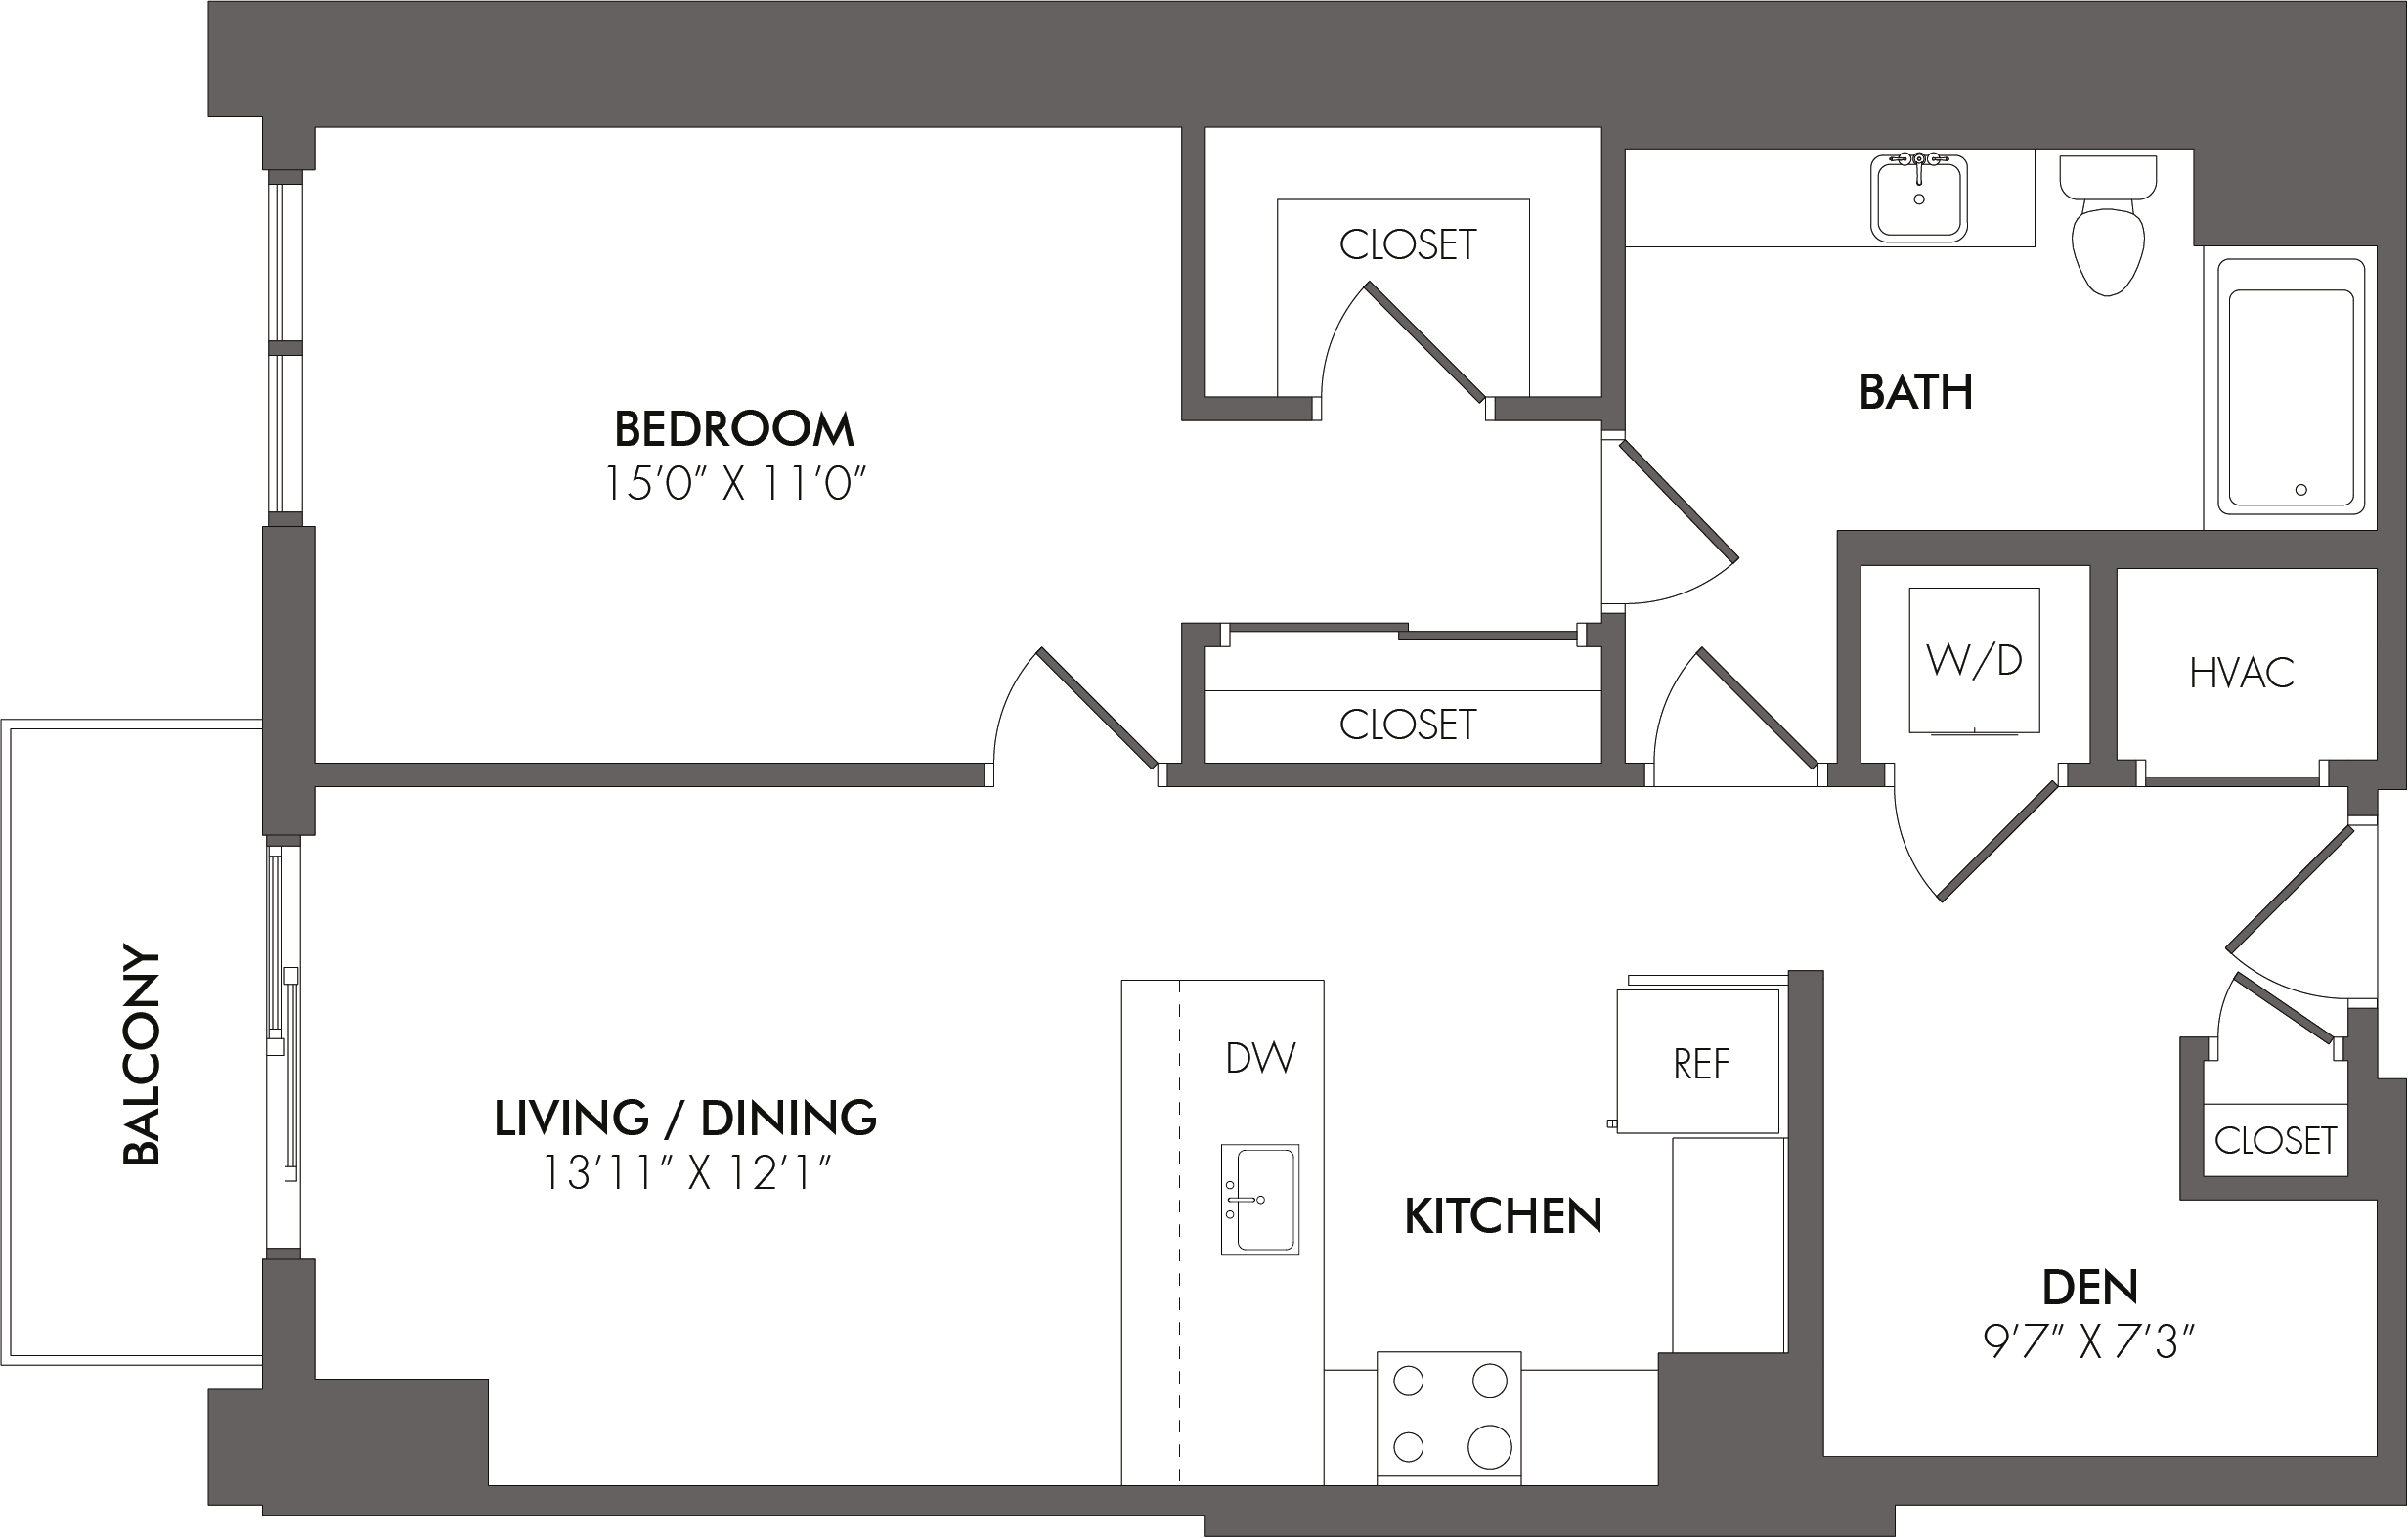 Apartment 3408 floorplan